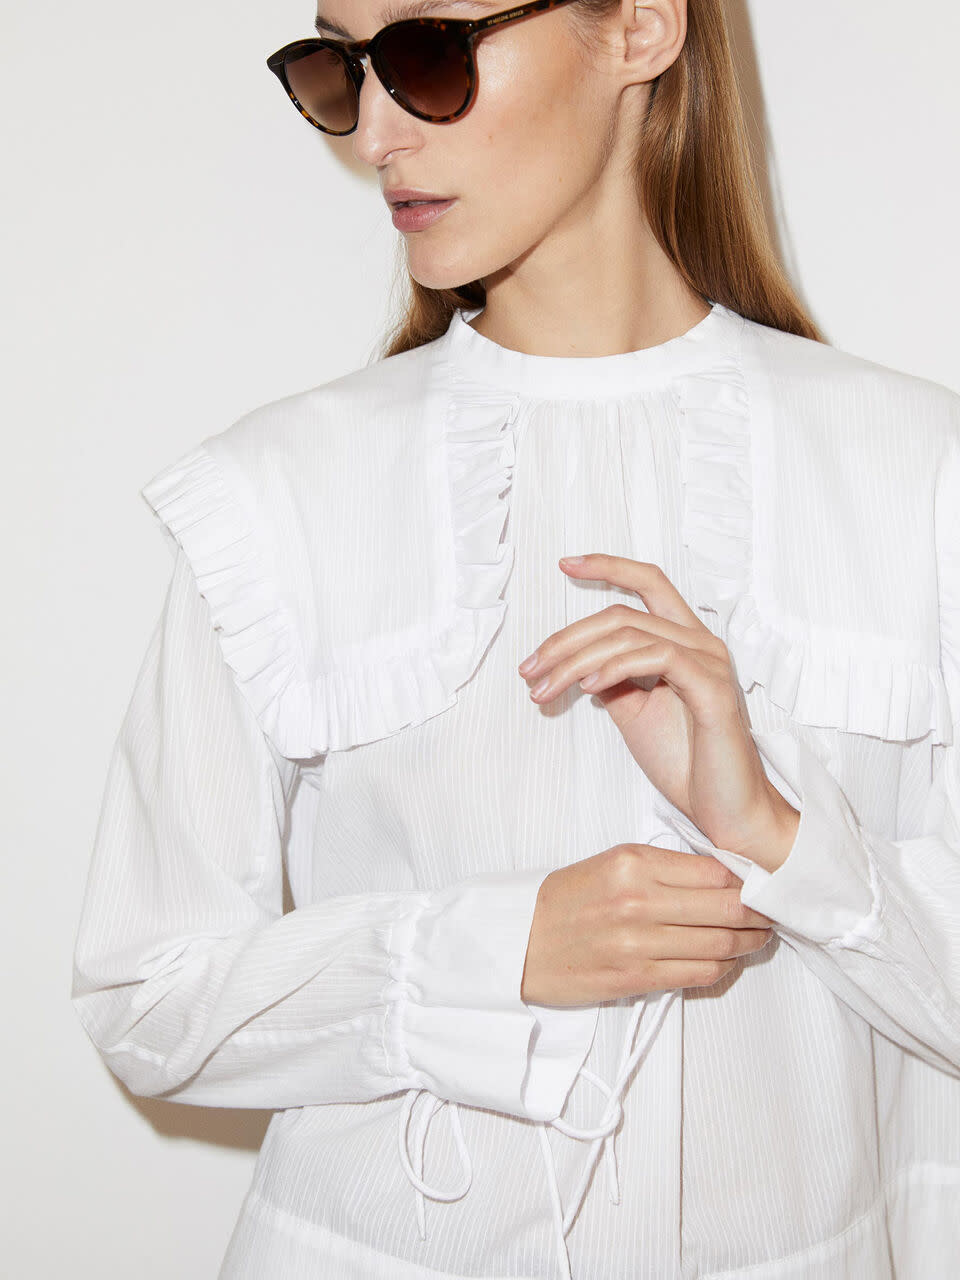 Salinger blouse by malene birger-3